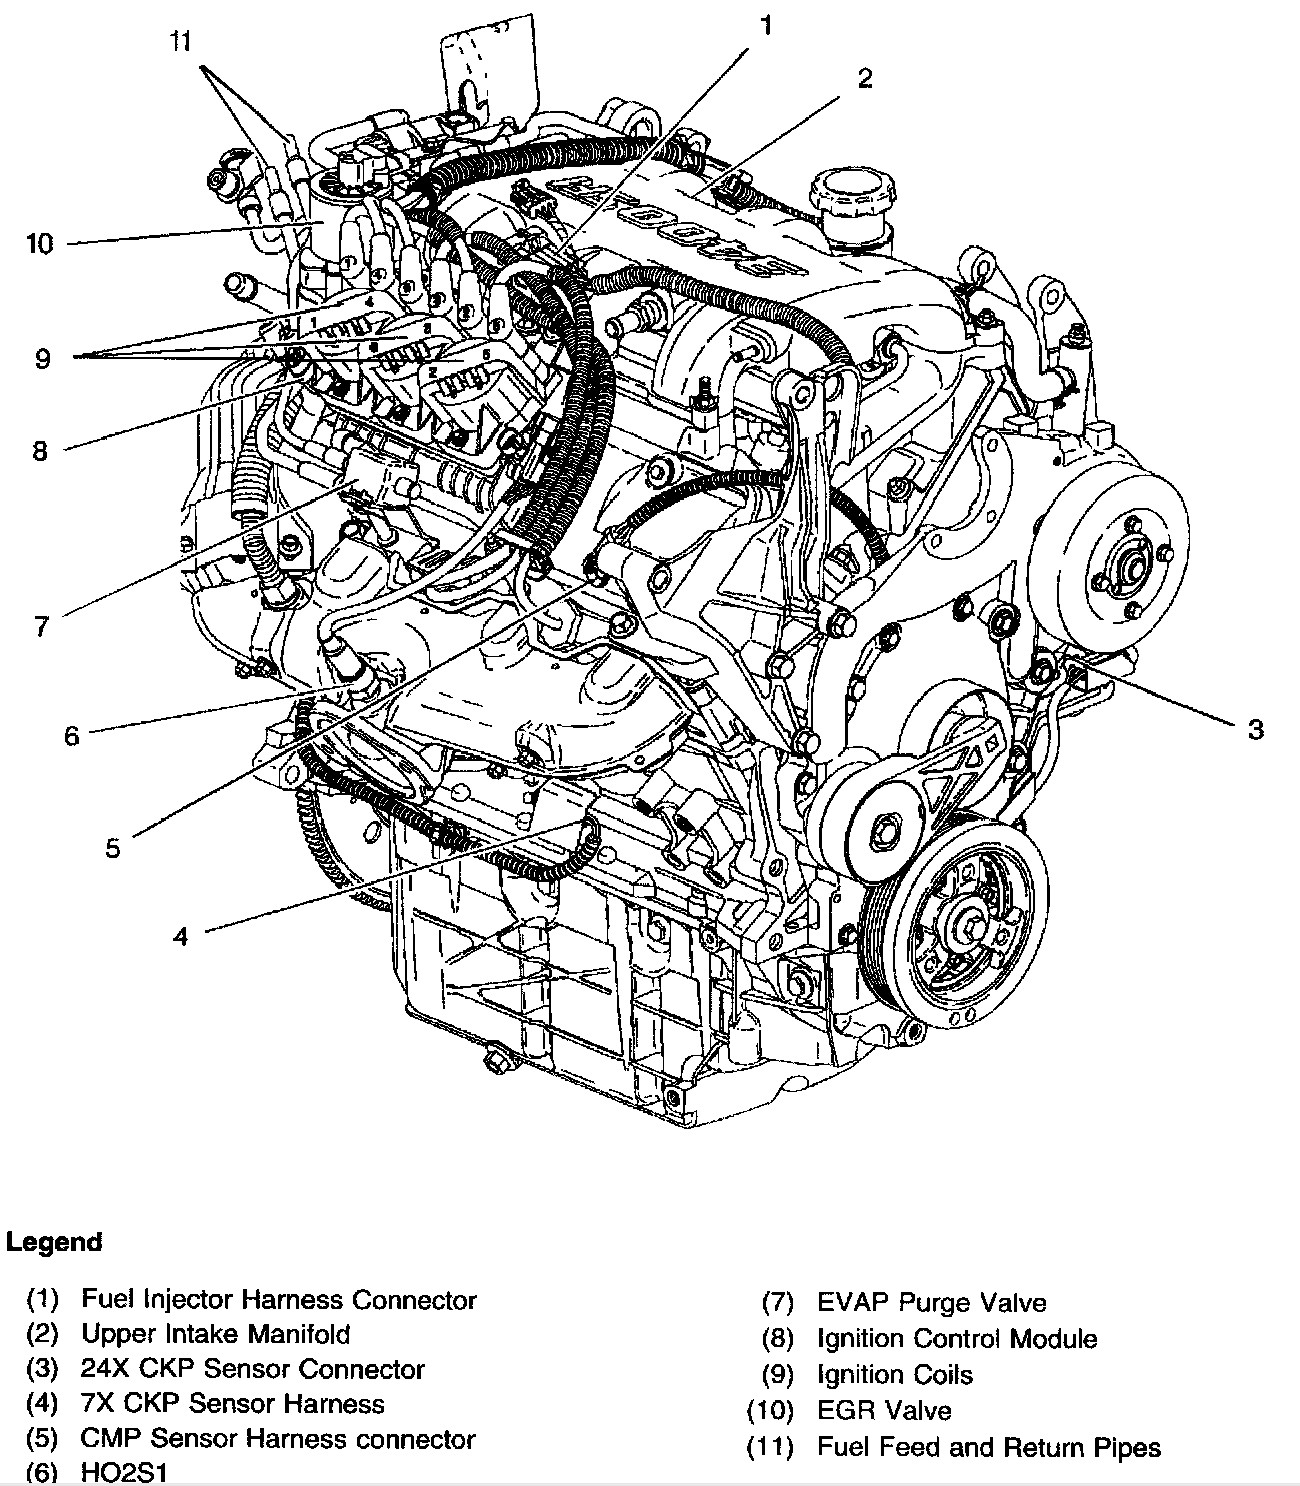 Gm Ignition Control Module Wiring Diagram